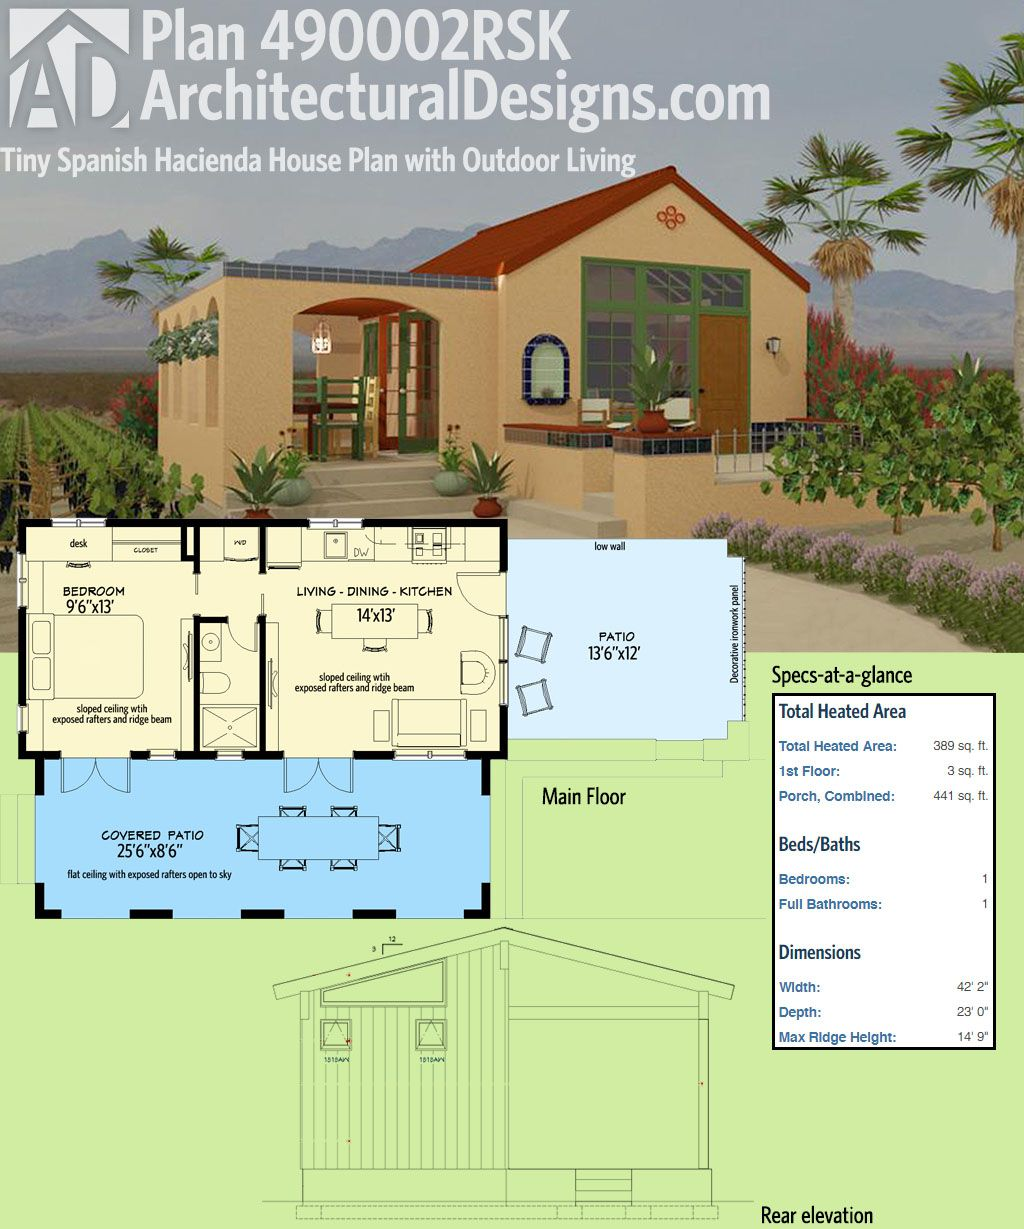 Architectural Designs Tiny House Plan 490002rsk Is Modeled After The Spanish Style Hacienda It G Mediterranean House Plans Diy House Plans Cottage House Plans